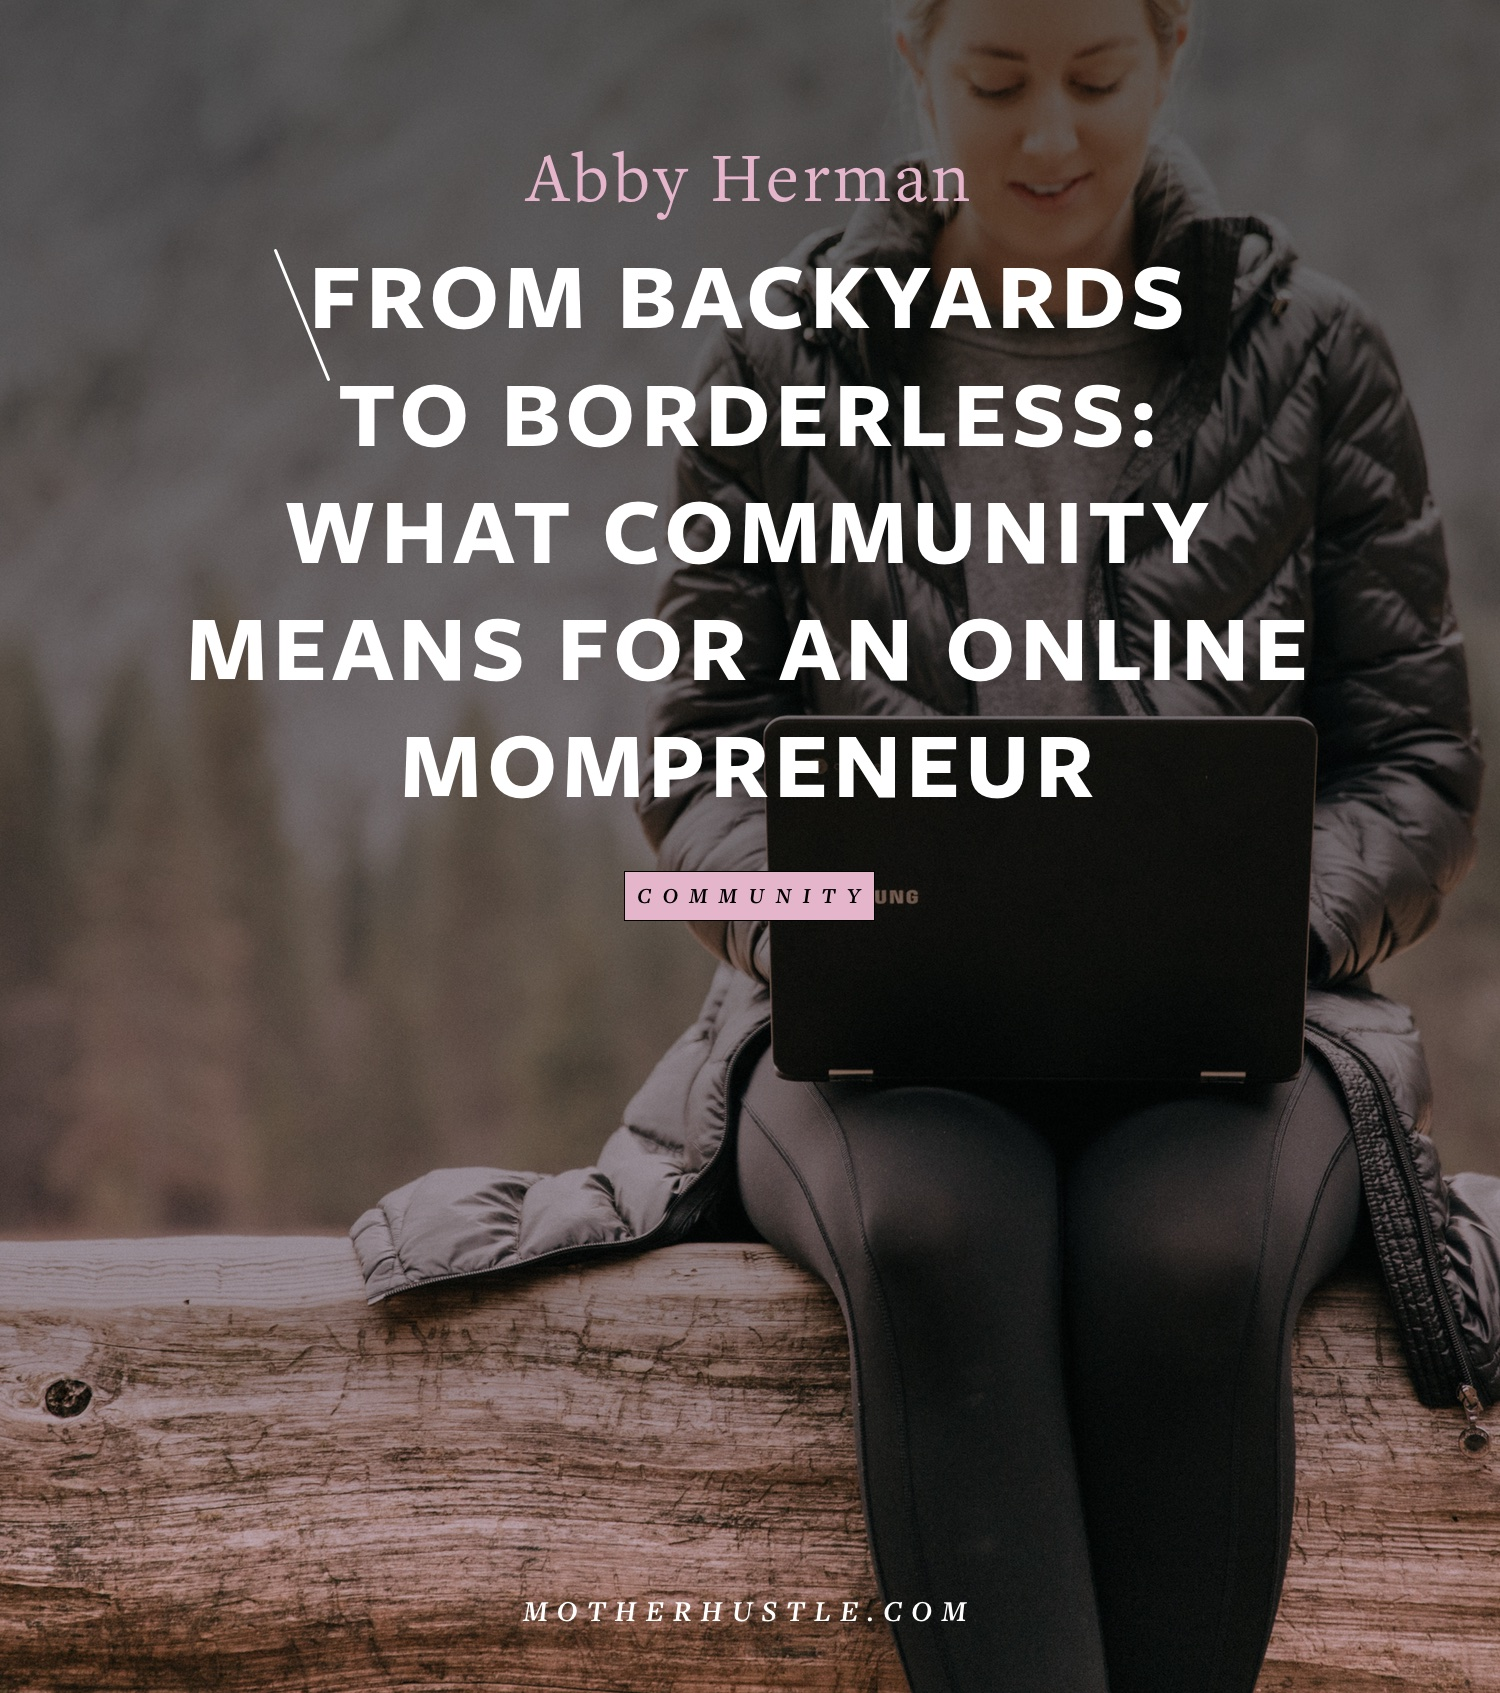 From Backyards to Borderless- What Community Means For An Online Mompreneur - By Abby Herman for MotherHustle